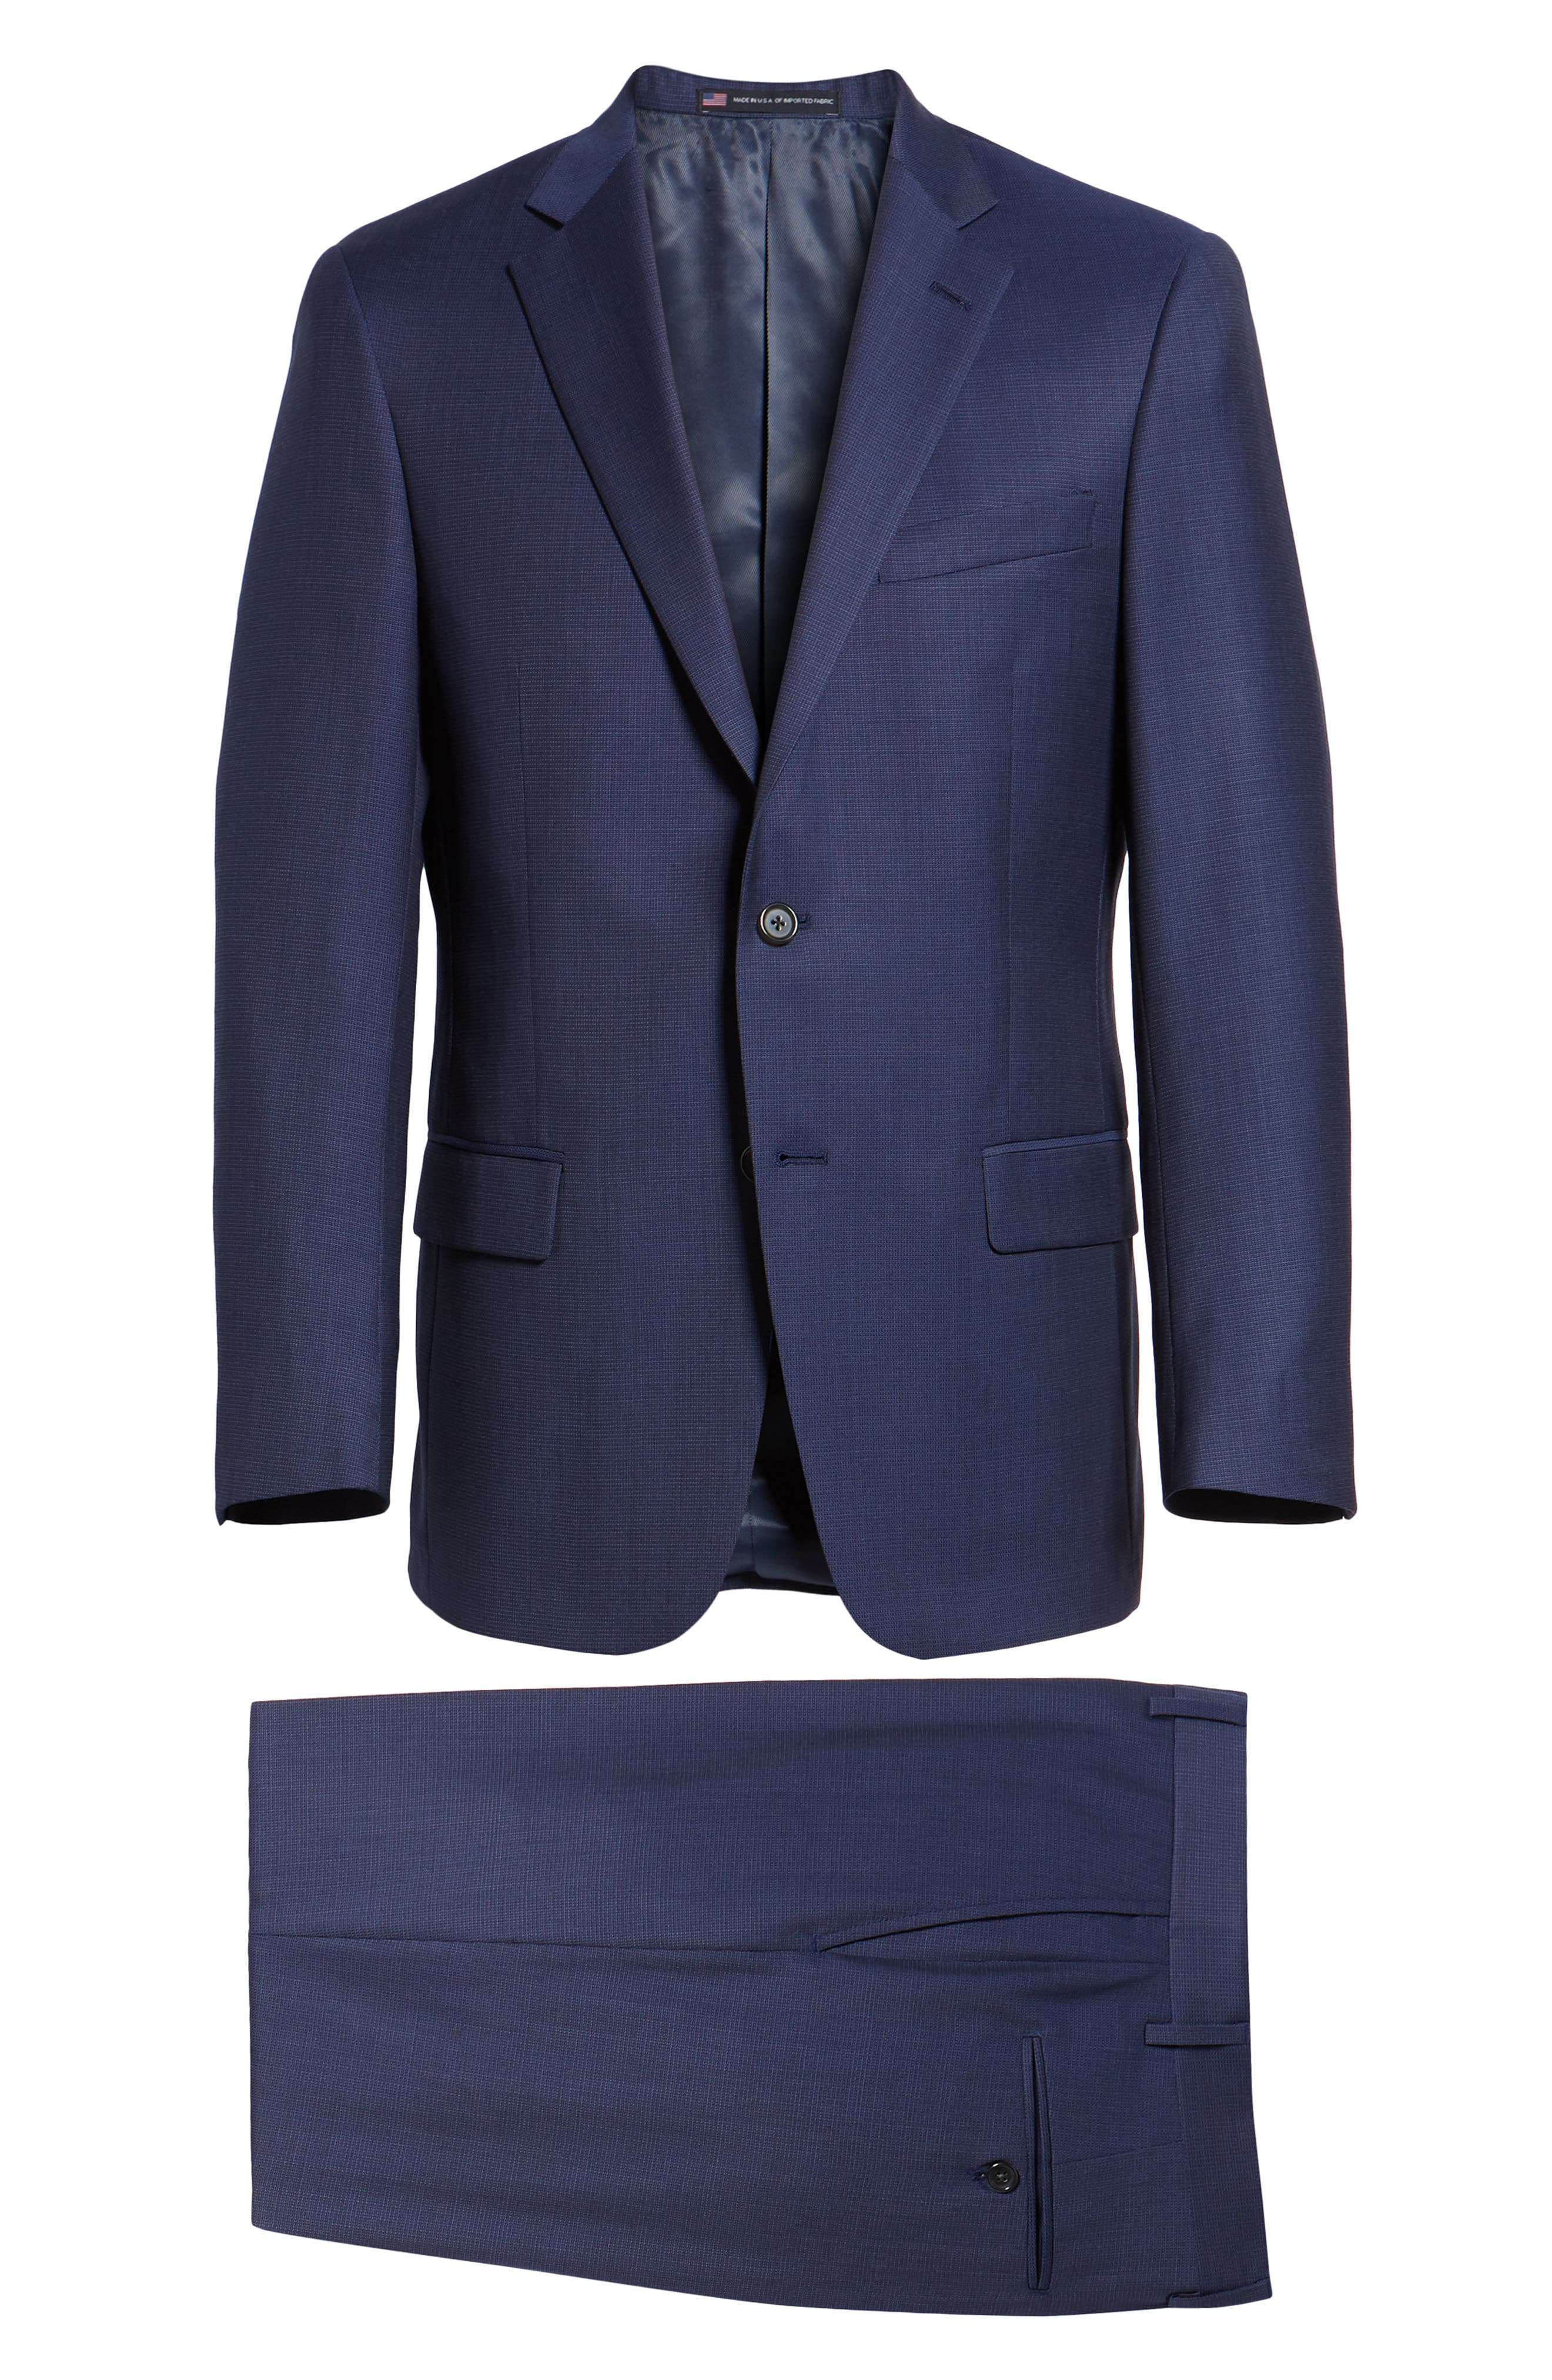 New York Classic Fit Check Wool Suit,                             Alternate thumbnail 8, color,                             400